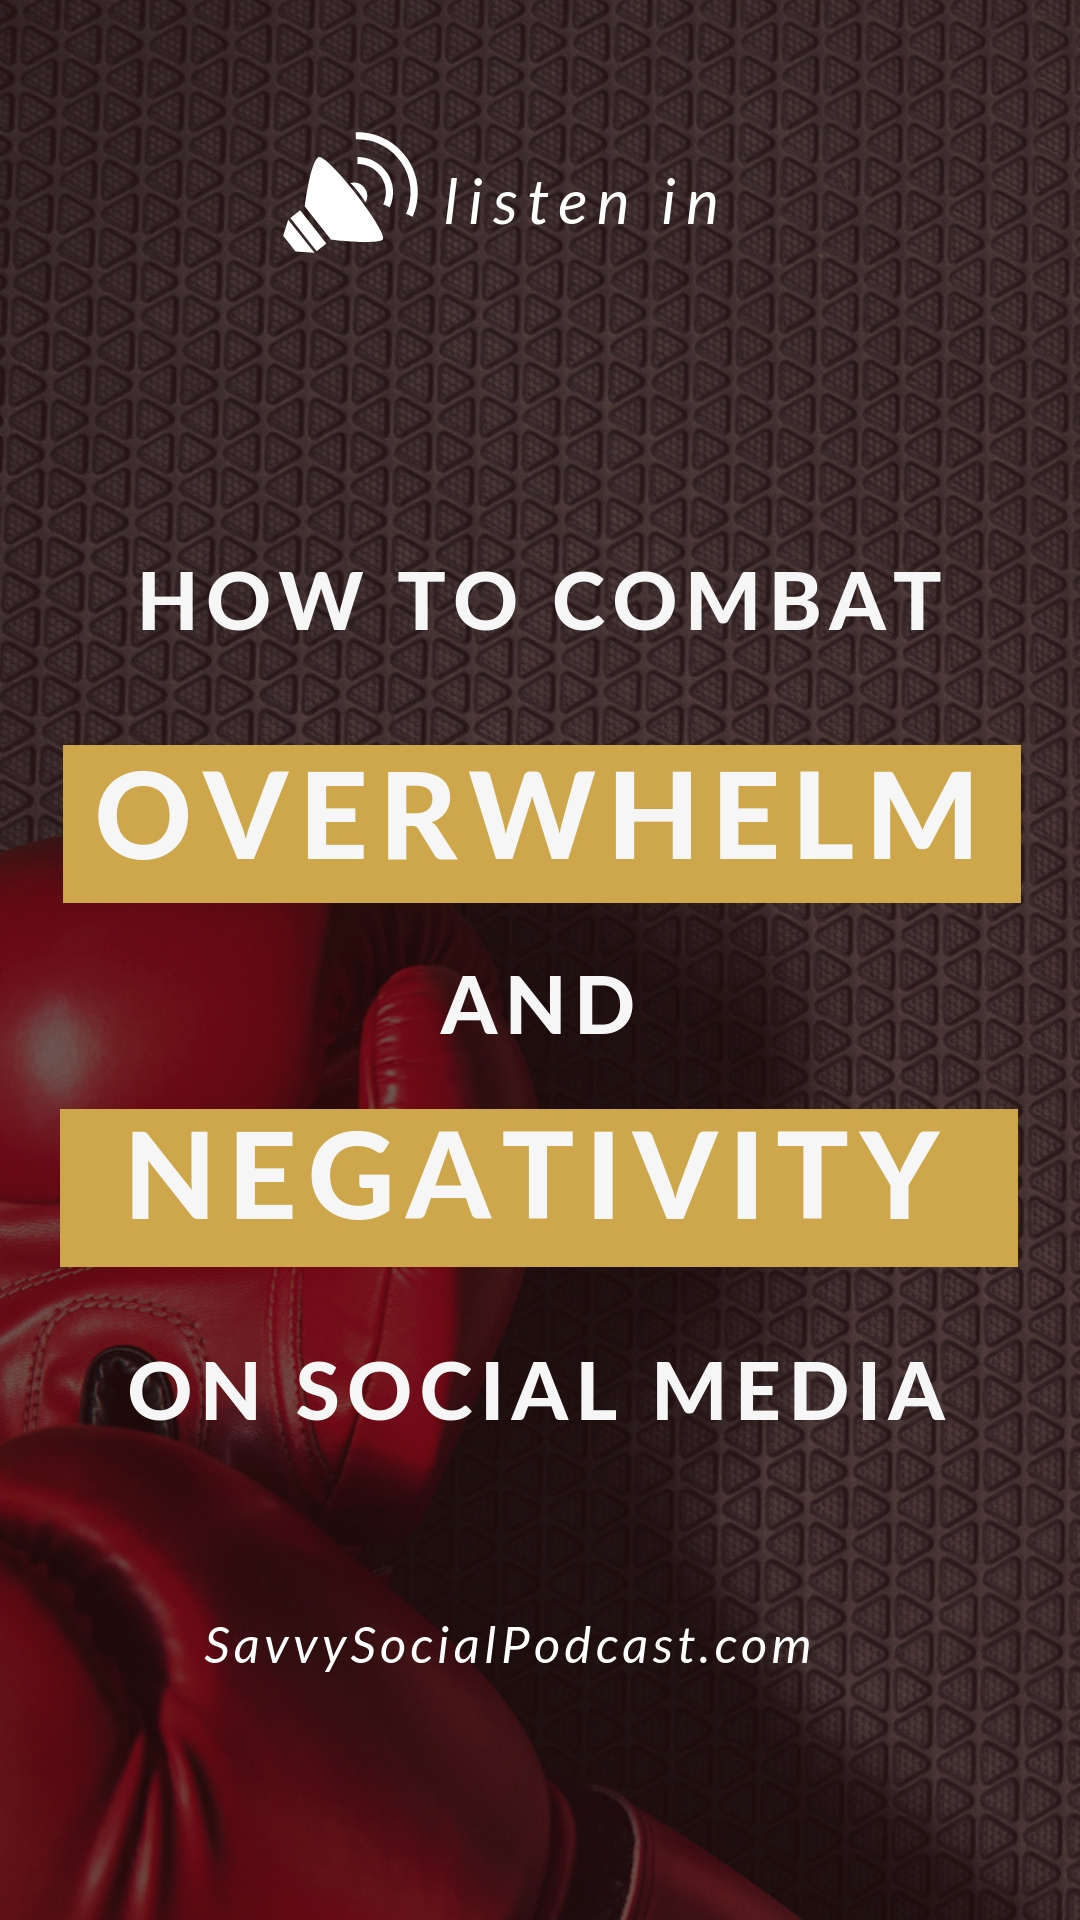 Raise your hand if social media is overwhelming & negative for you. ✋  You're not alone! In this podcast episode, you'll hear some practical tips for how to combat those stressful feelings.